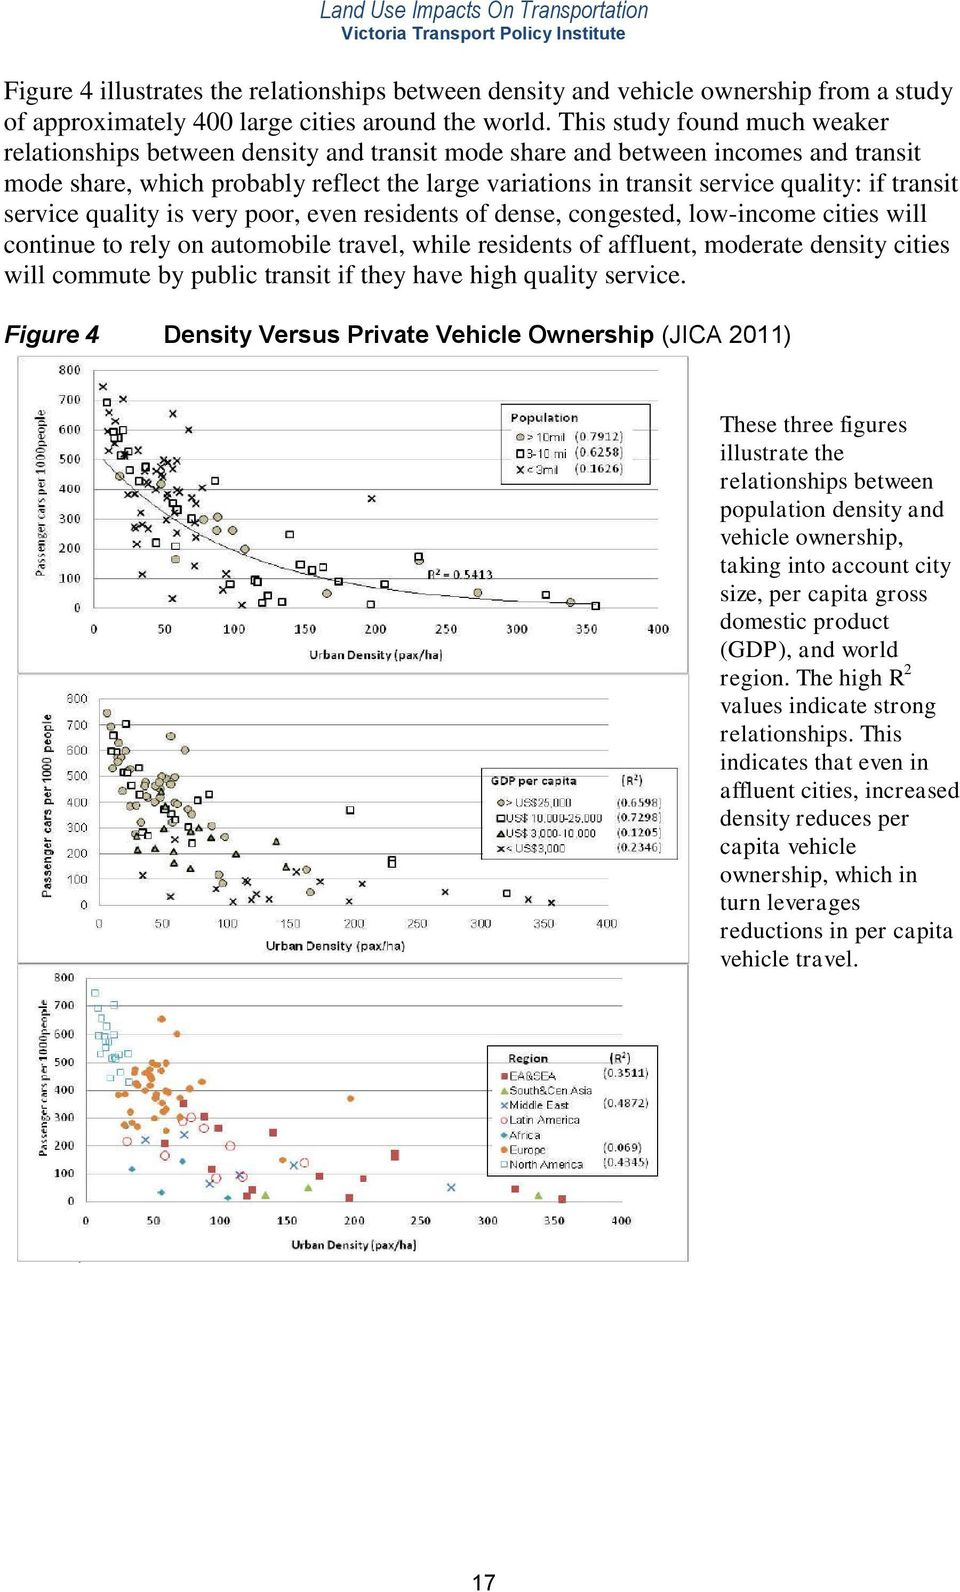 if transit service quality is very poor, even residents of dense, congested, low-income cities will continue to rely on automobile travel, while residents of affluent, moderate density cities will